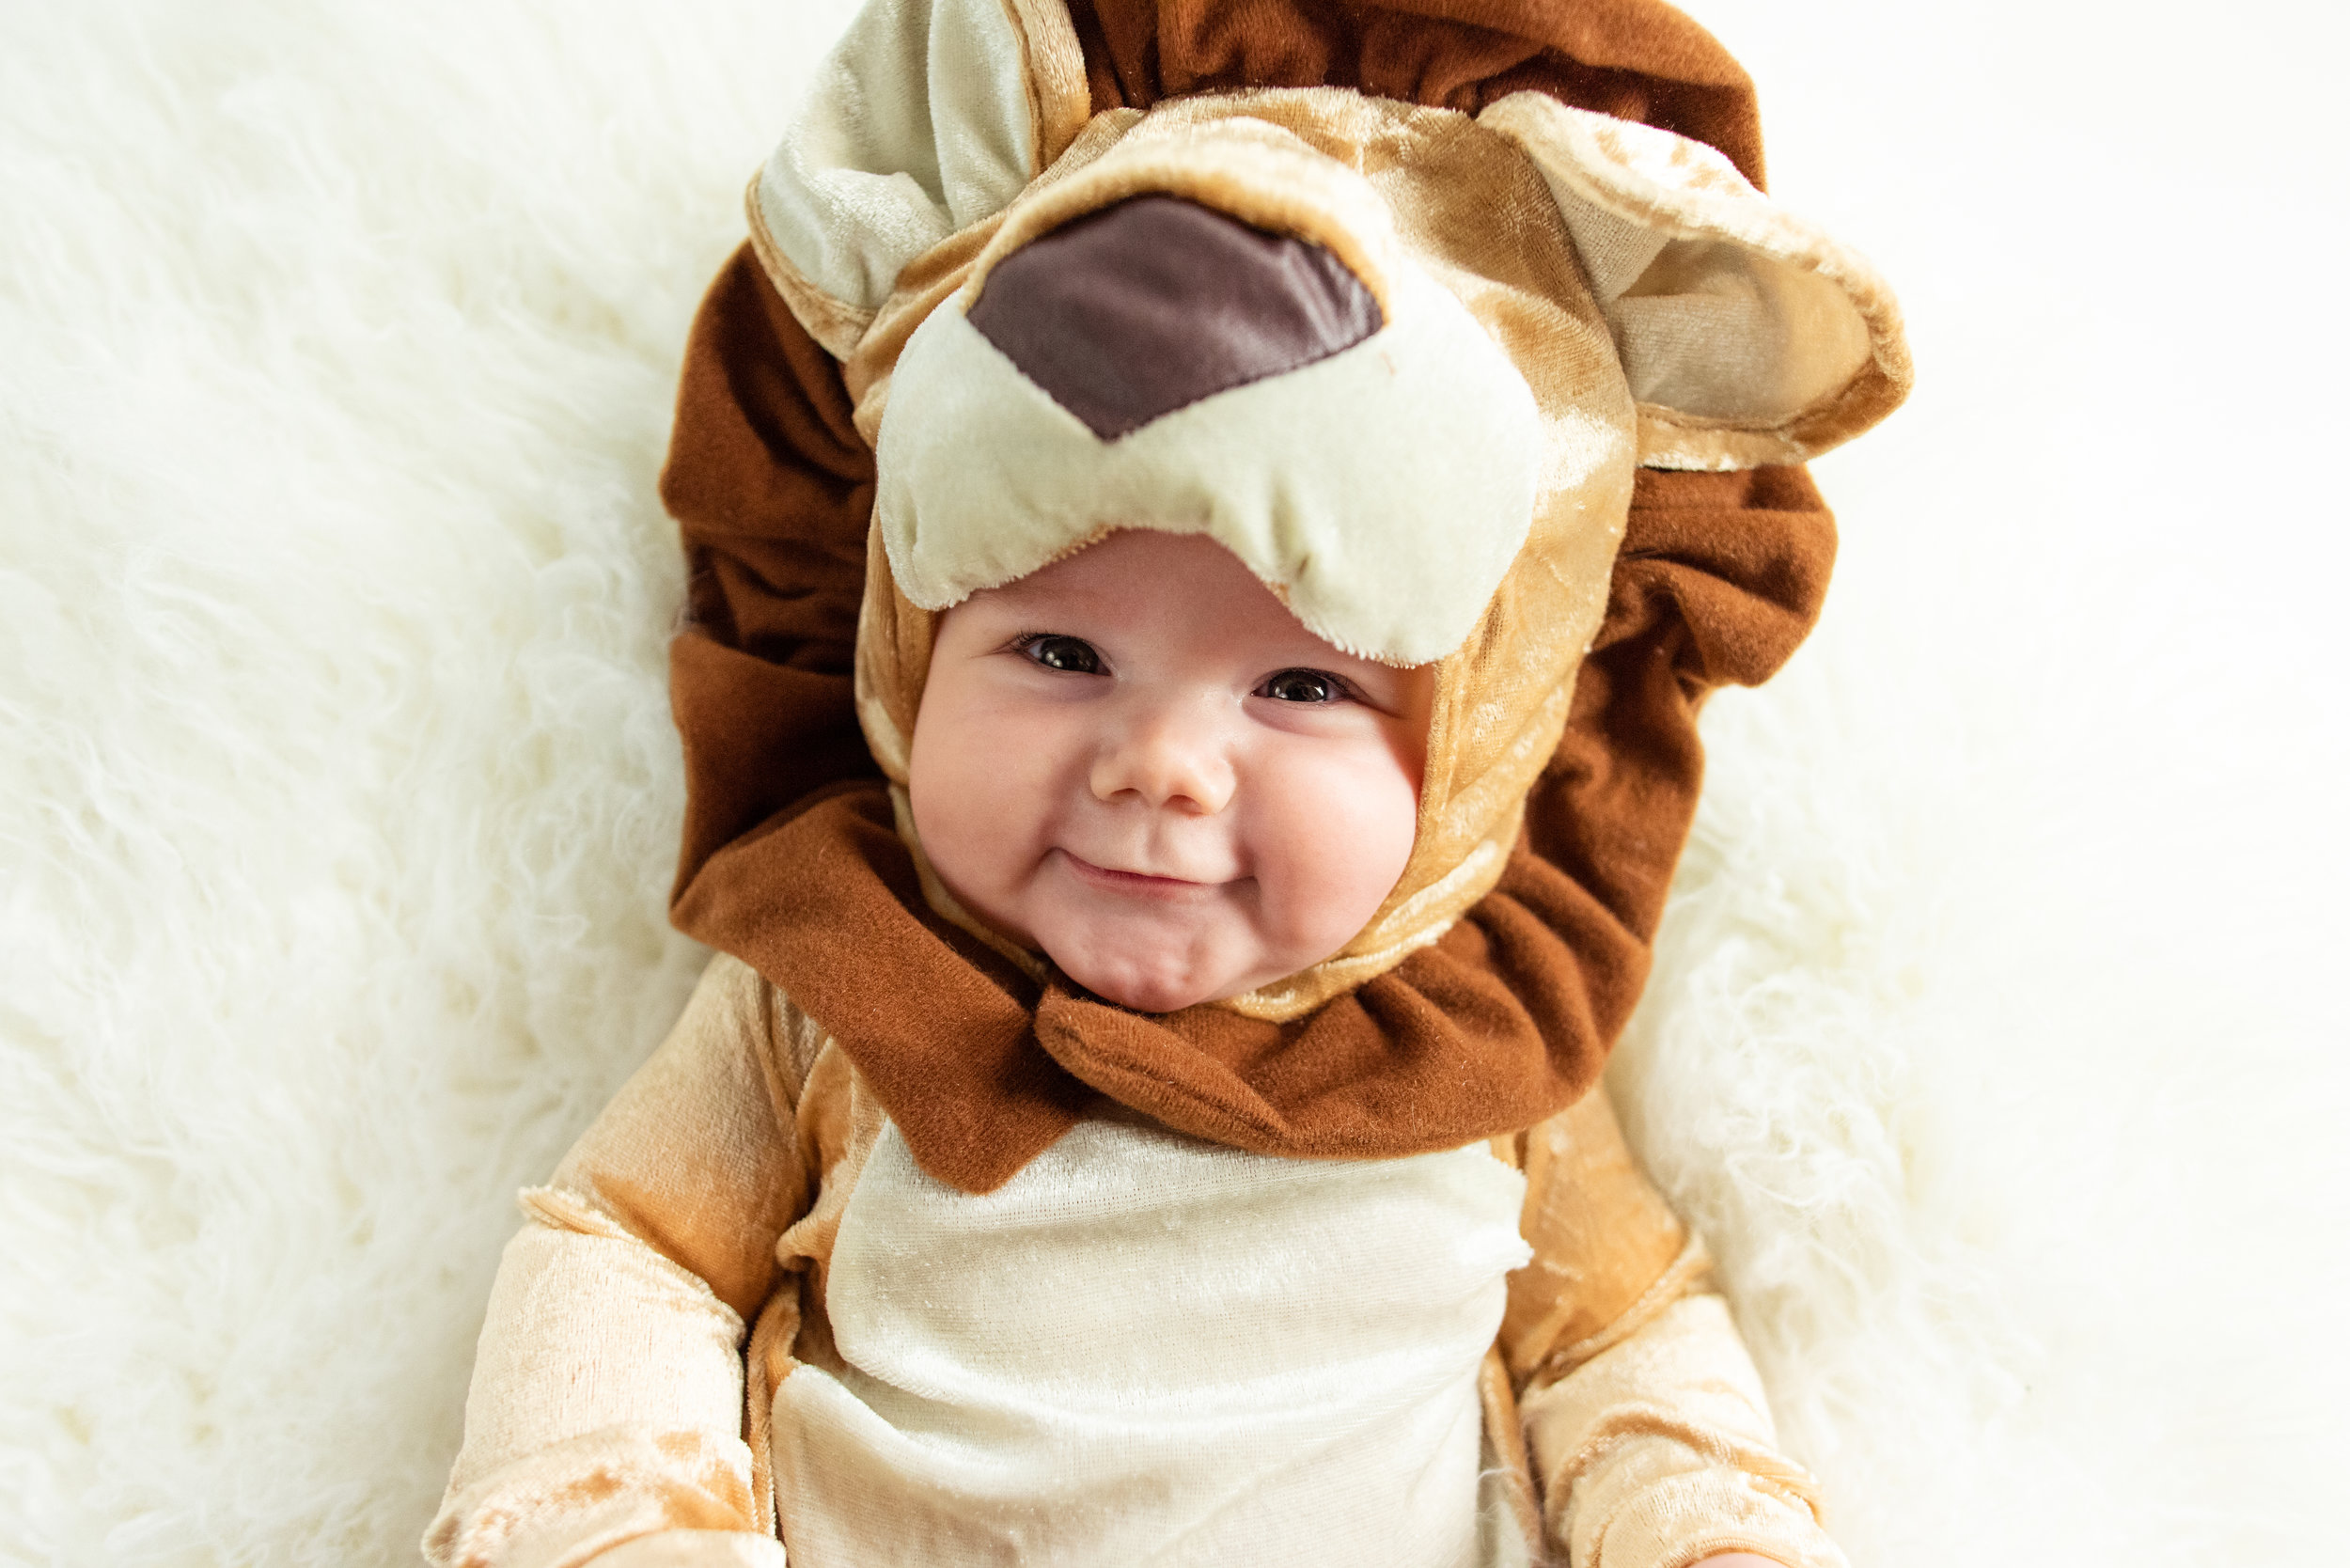 Leon the lion at three months old during Halloween 2018—just look at that precious smile! And that little nose!!!